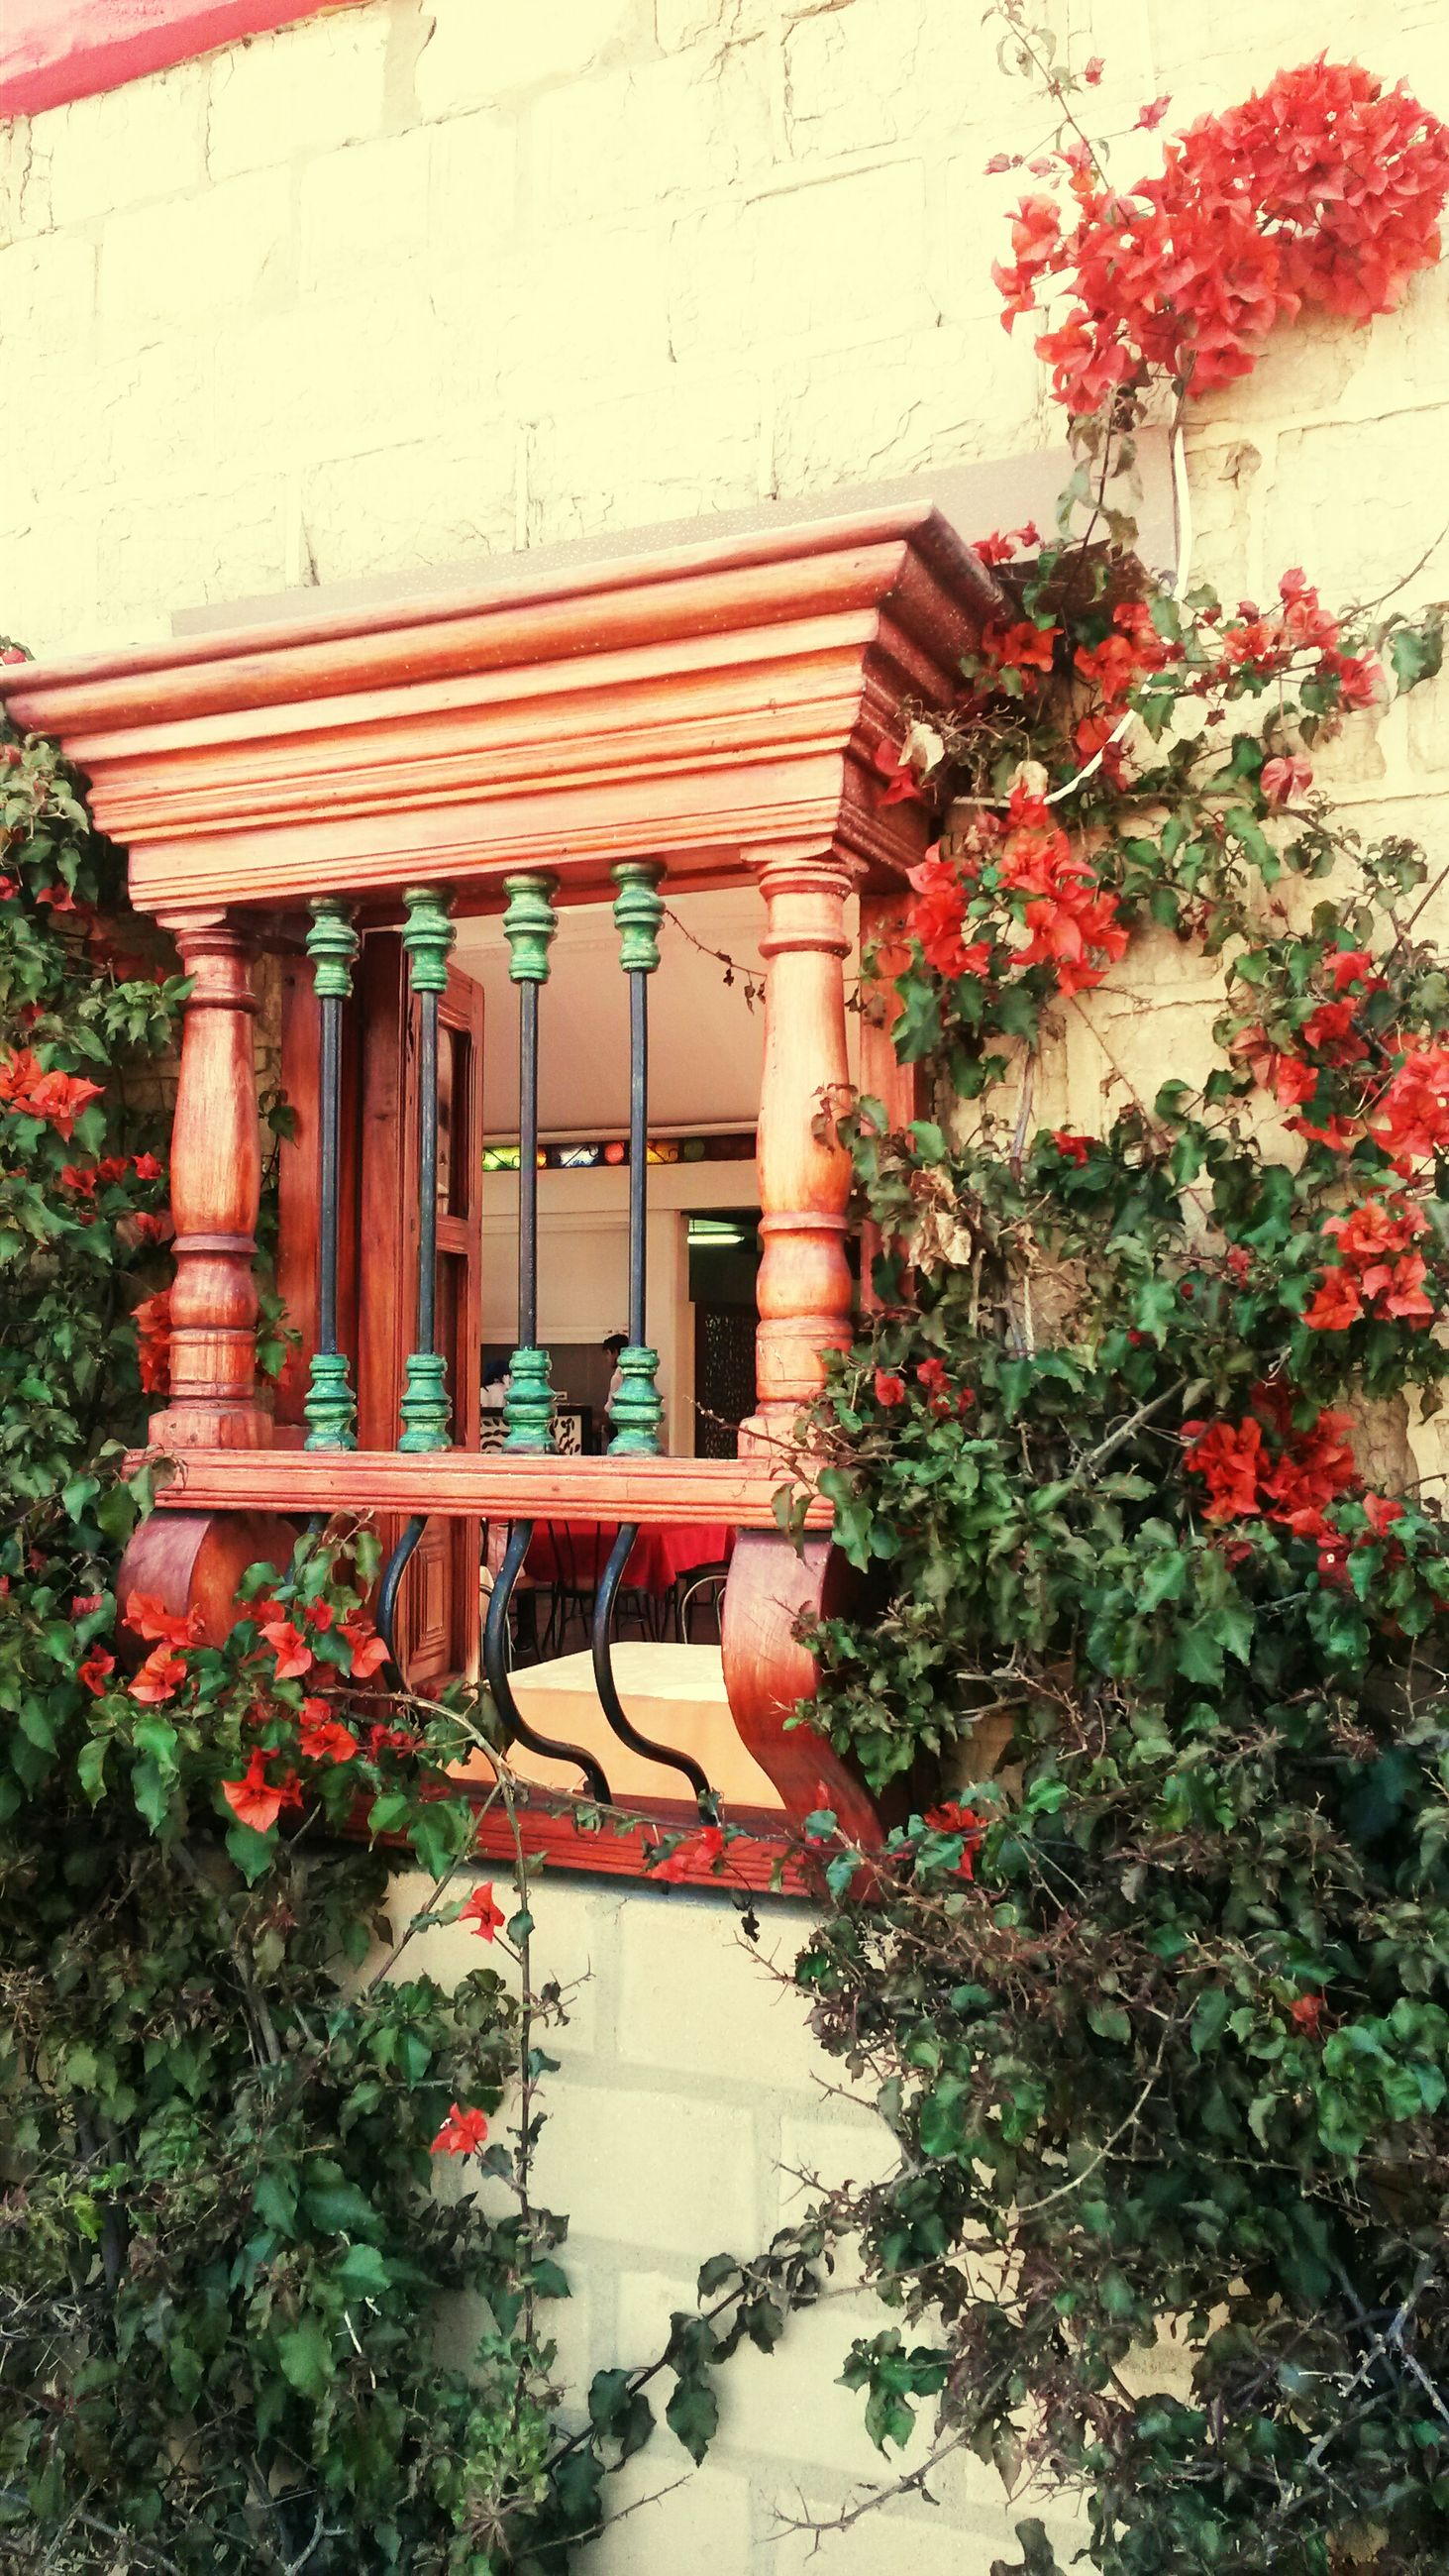 architecture, built structure, building exterior, red, flower, plant, house, potted plant, growth, tree, window, entrance, steps, day, railing, outdoors, residential structure, building, no people, door